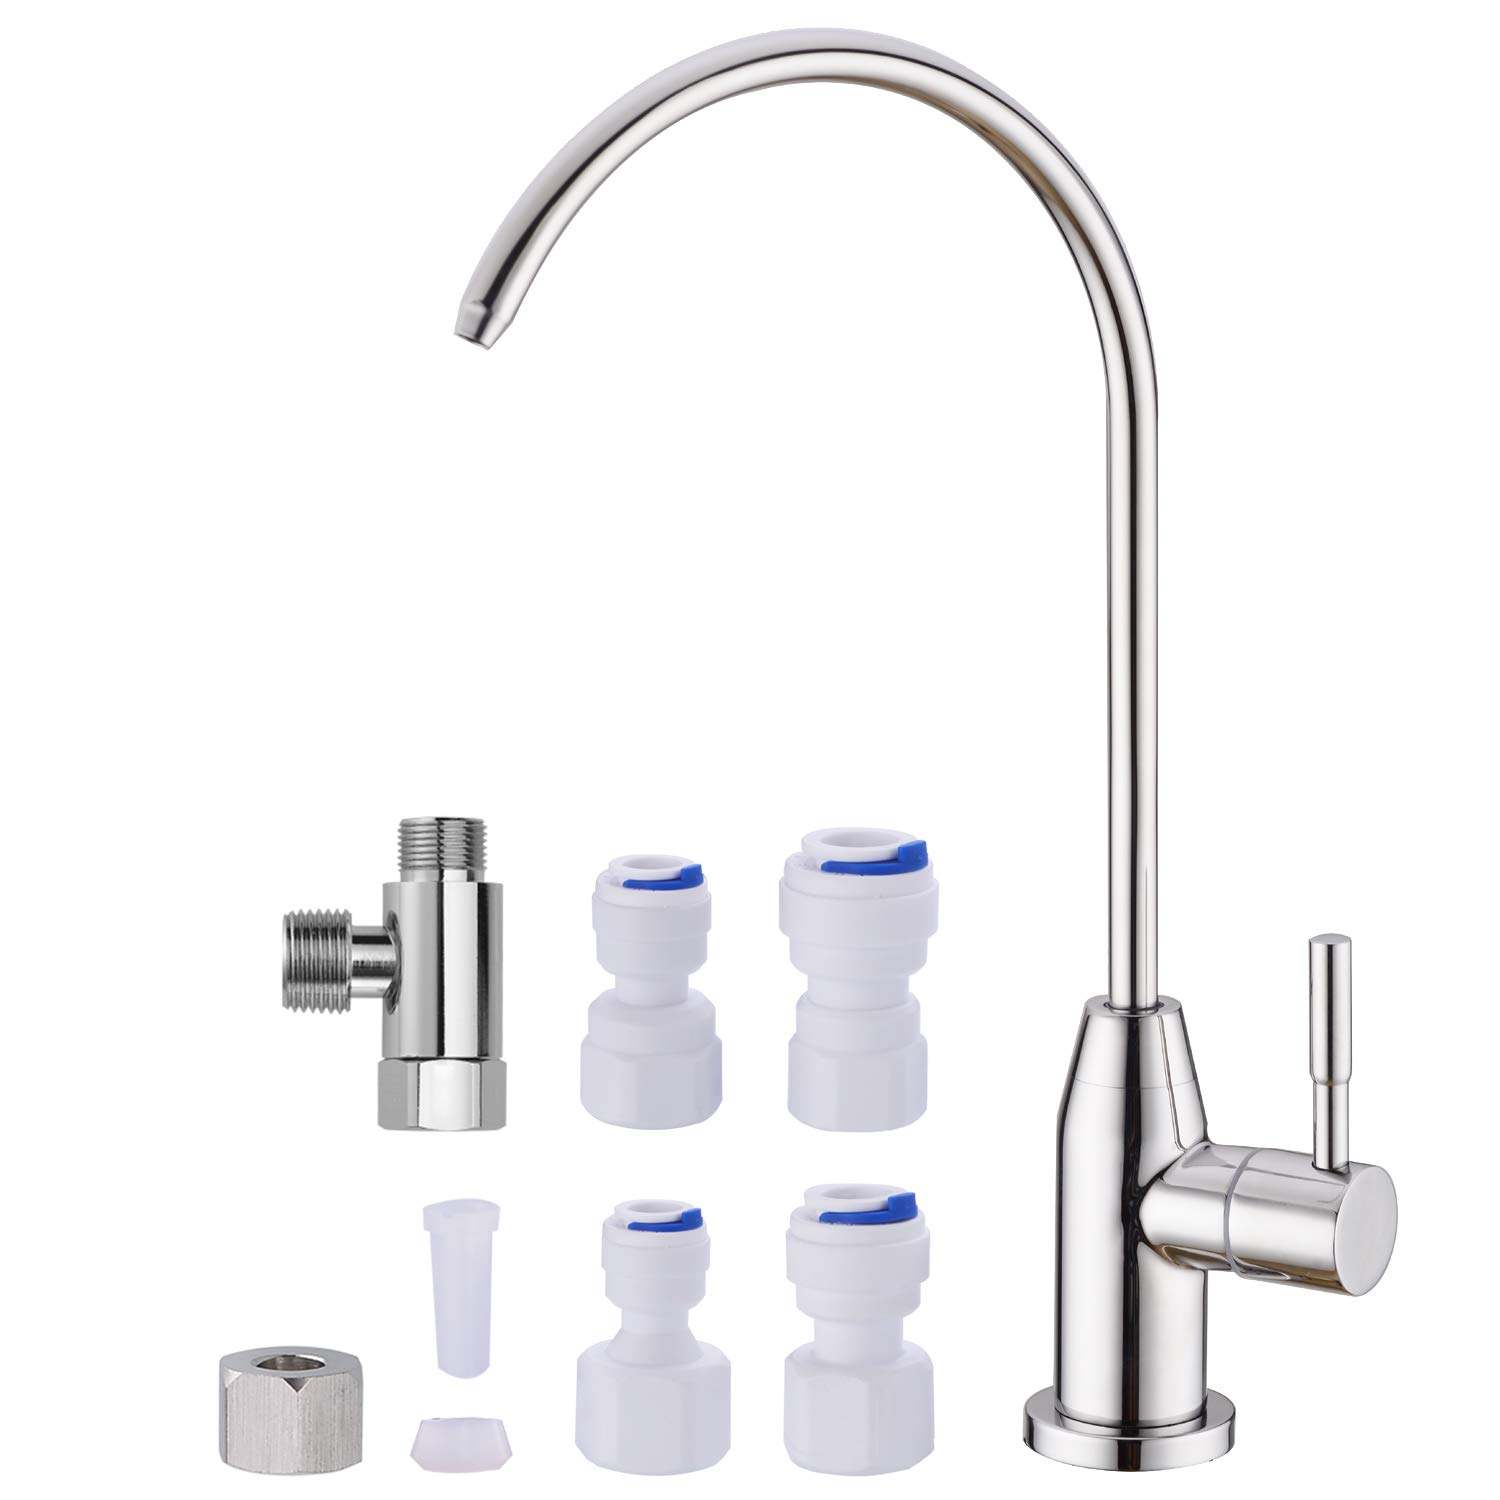 SINKINGDOM Sinktop Drinking Water Filter Faucet kit for Kitchen and Bar,Stainless Steel Polished Chrome